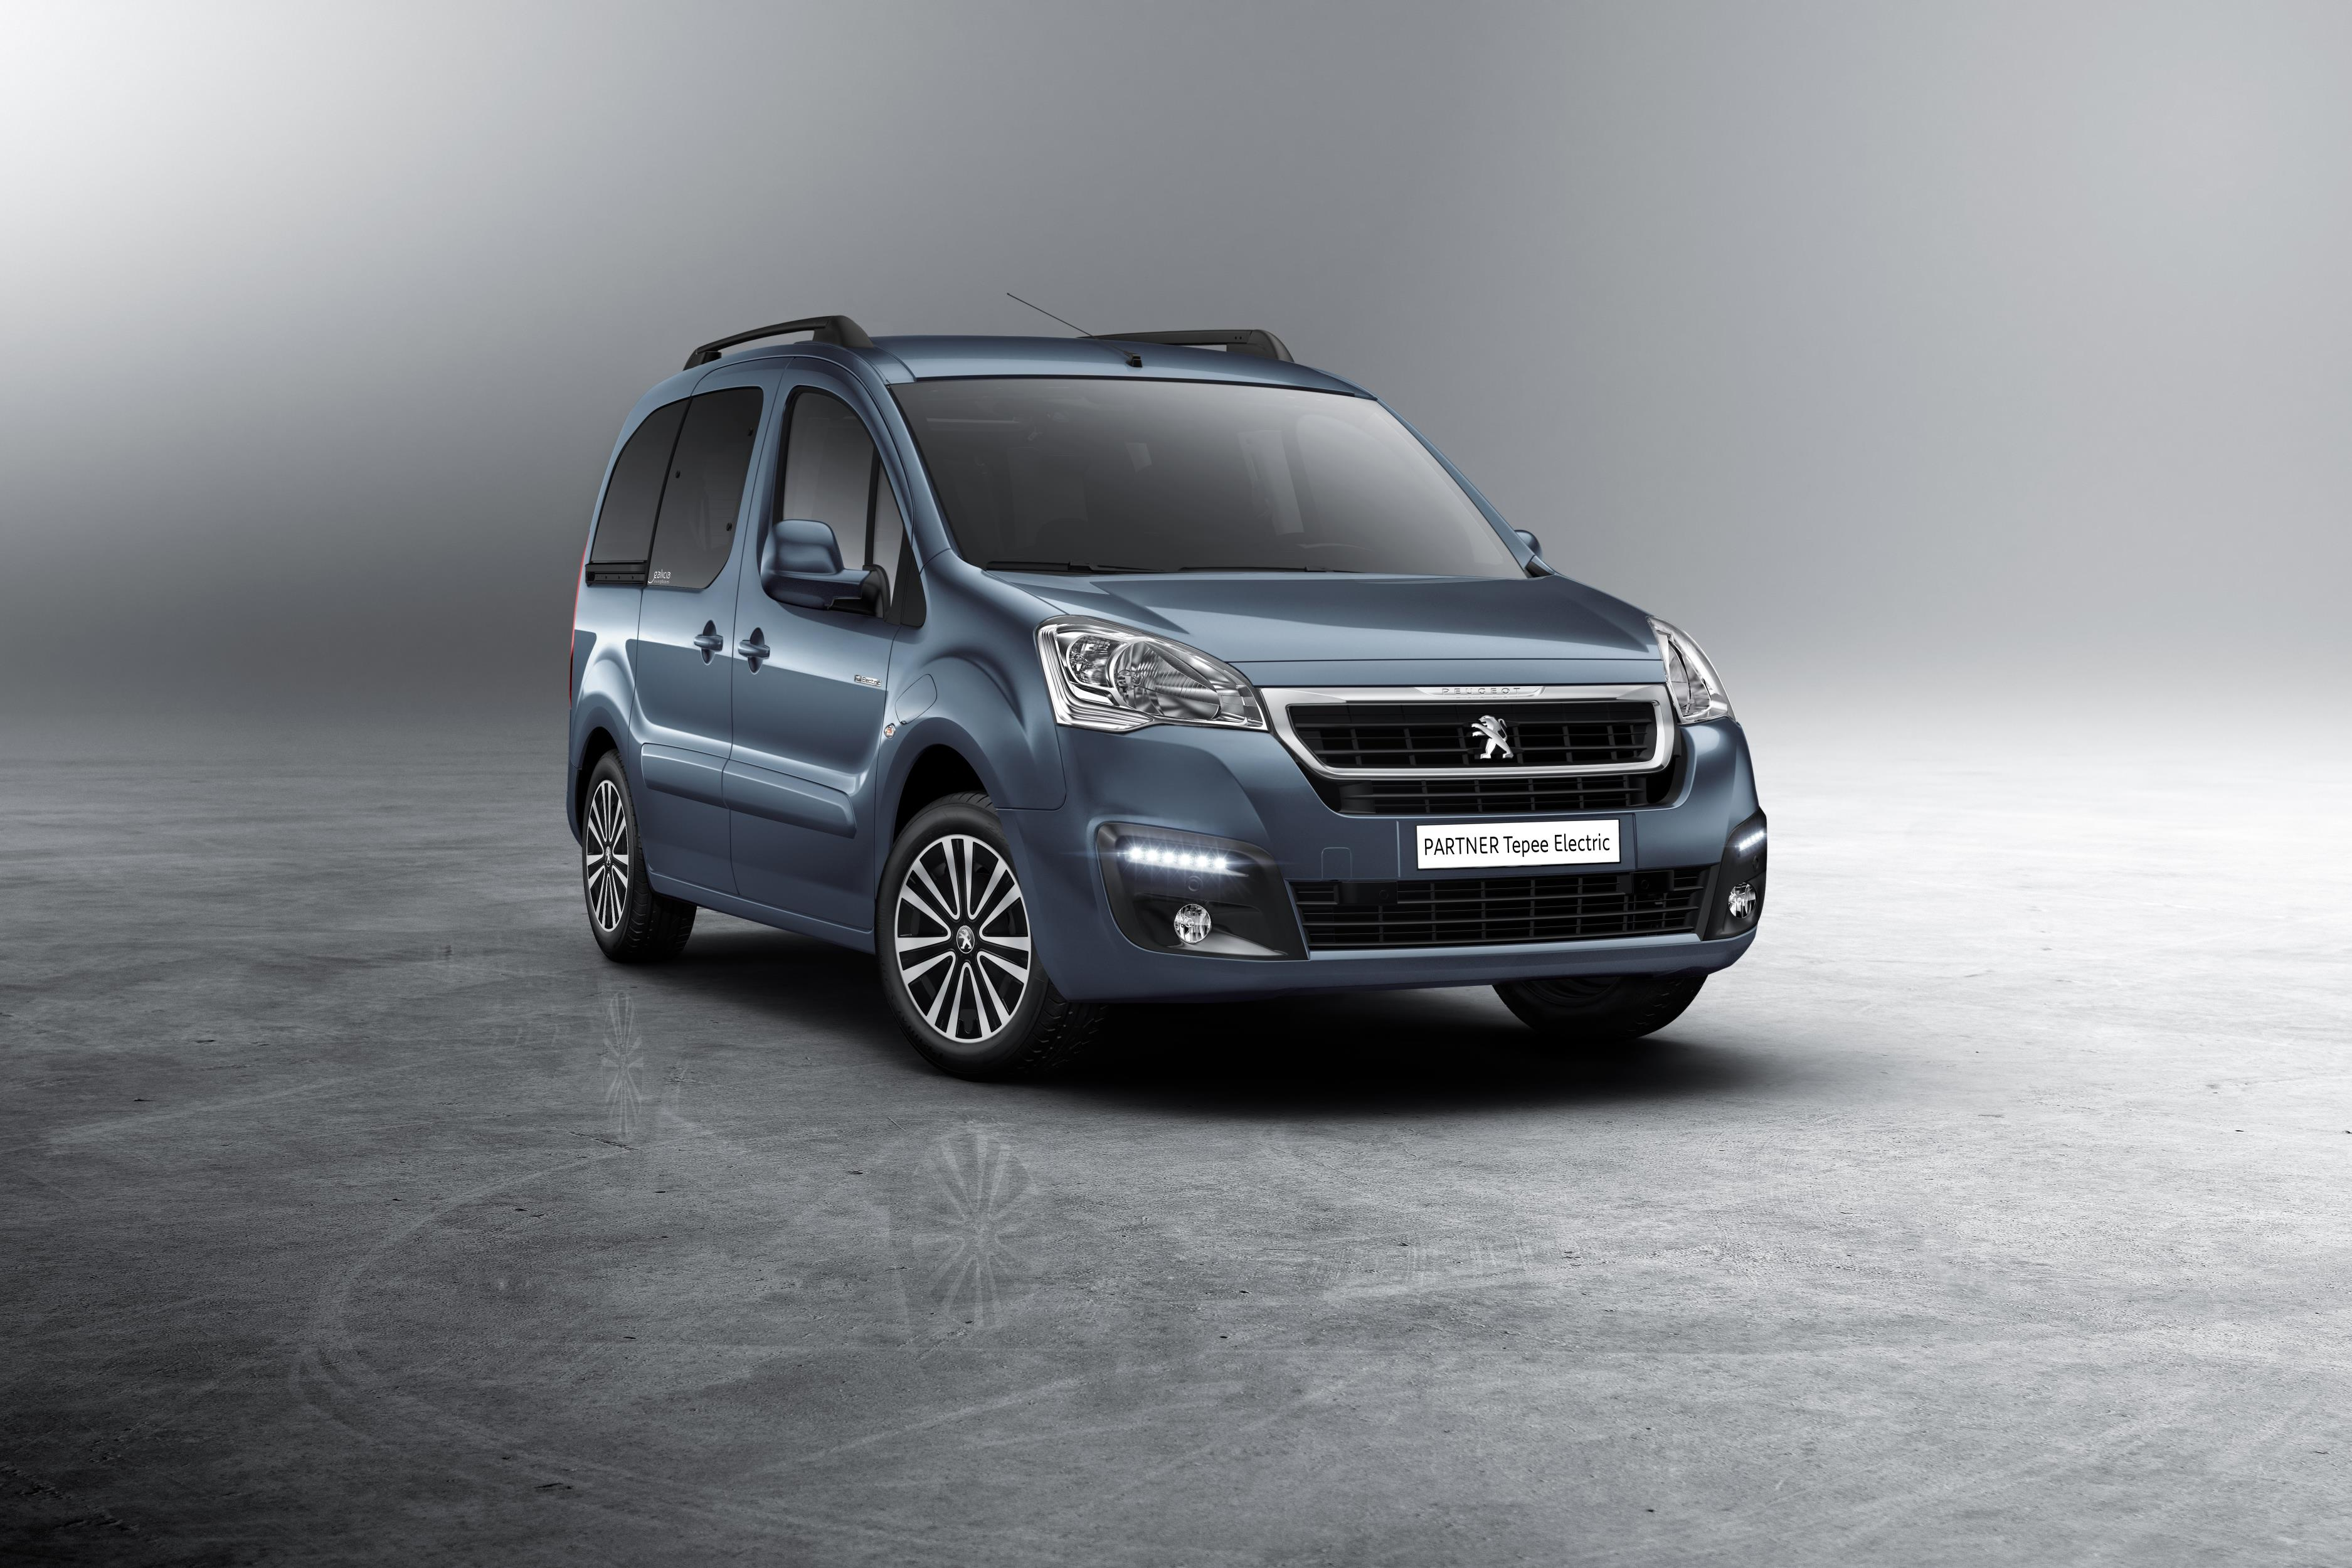 Electric Peugeot Partner Tepee to bring 100-plus mile range